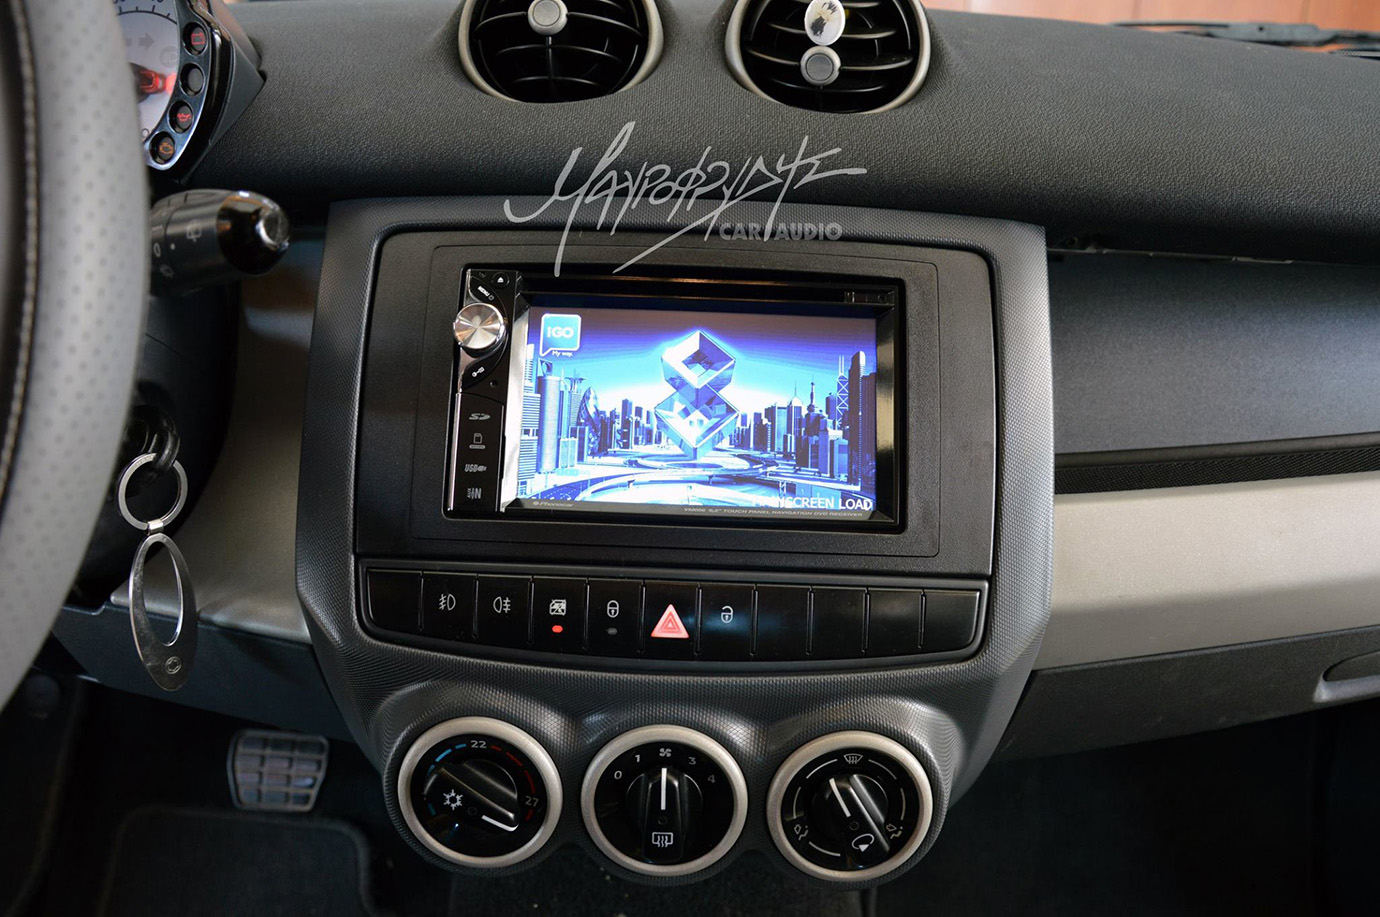 smart forfour vm 056 multimedia